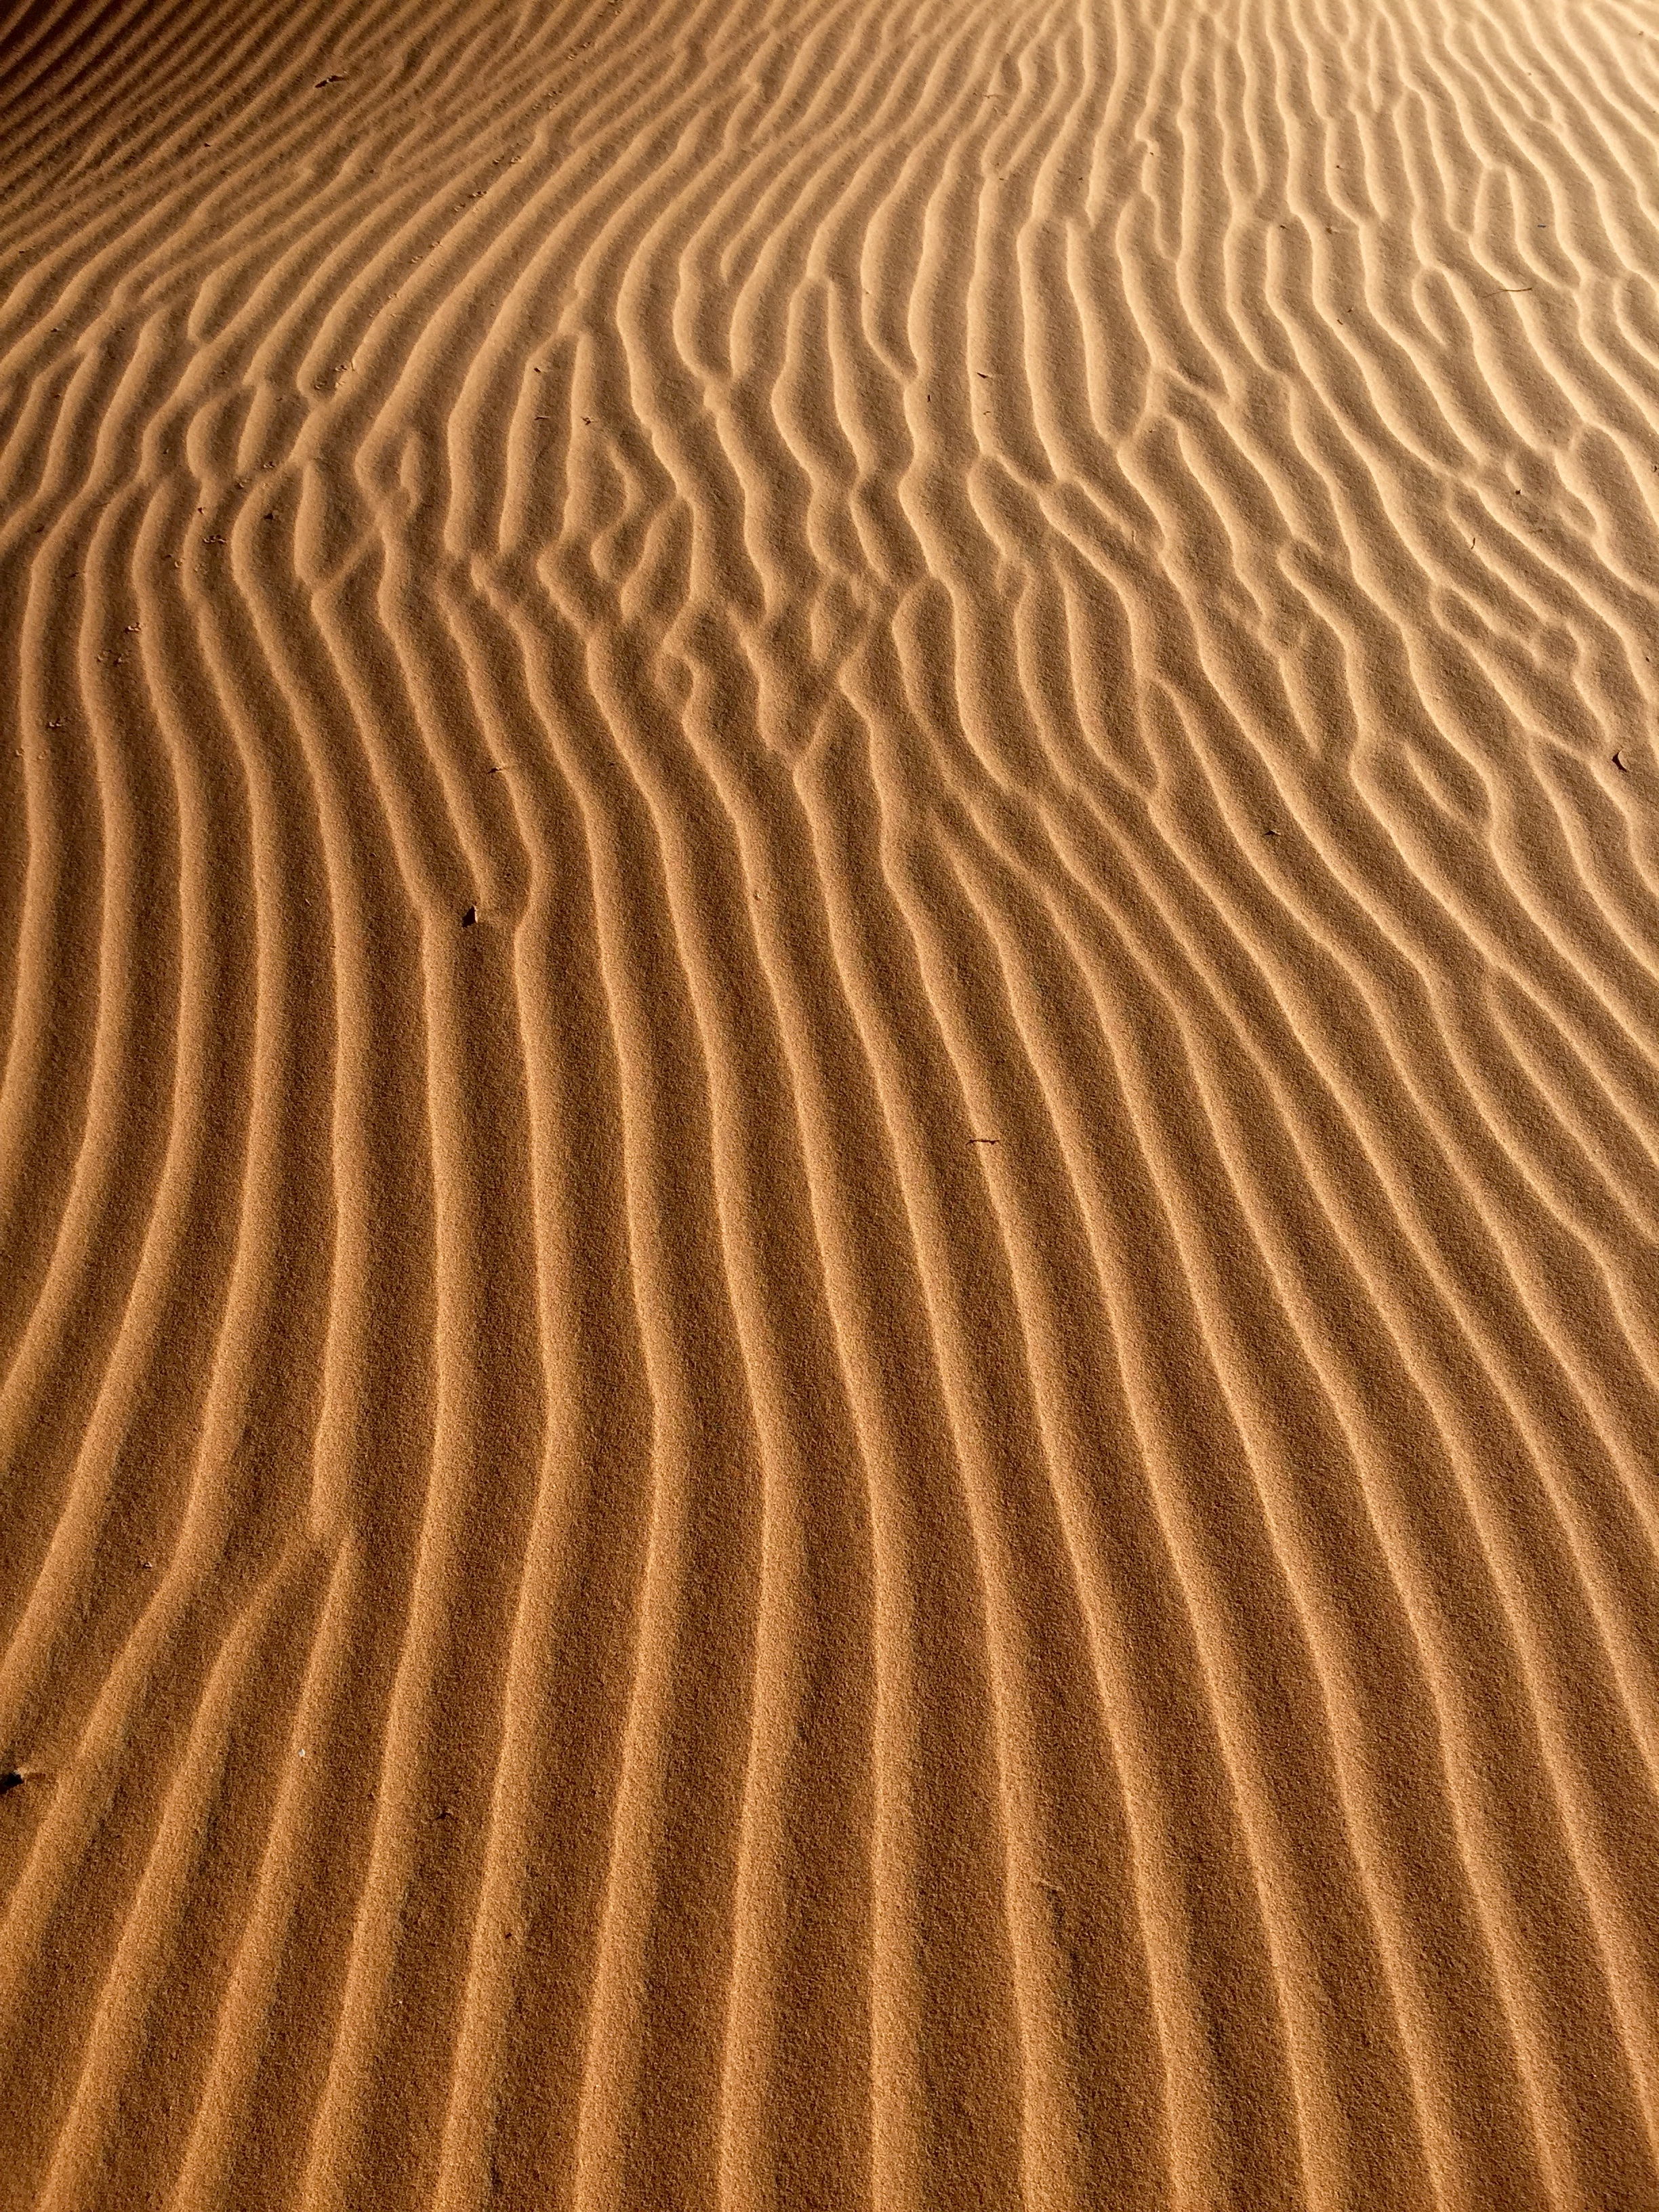 Erg Chebbi/The Sahara, Morocco